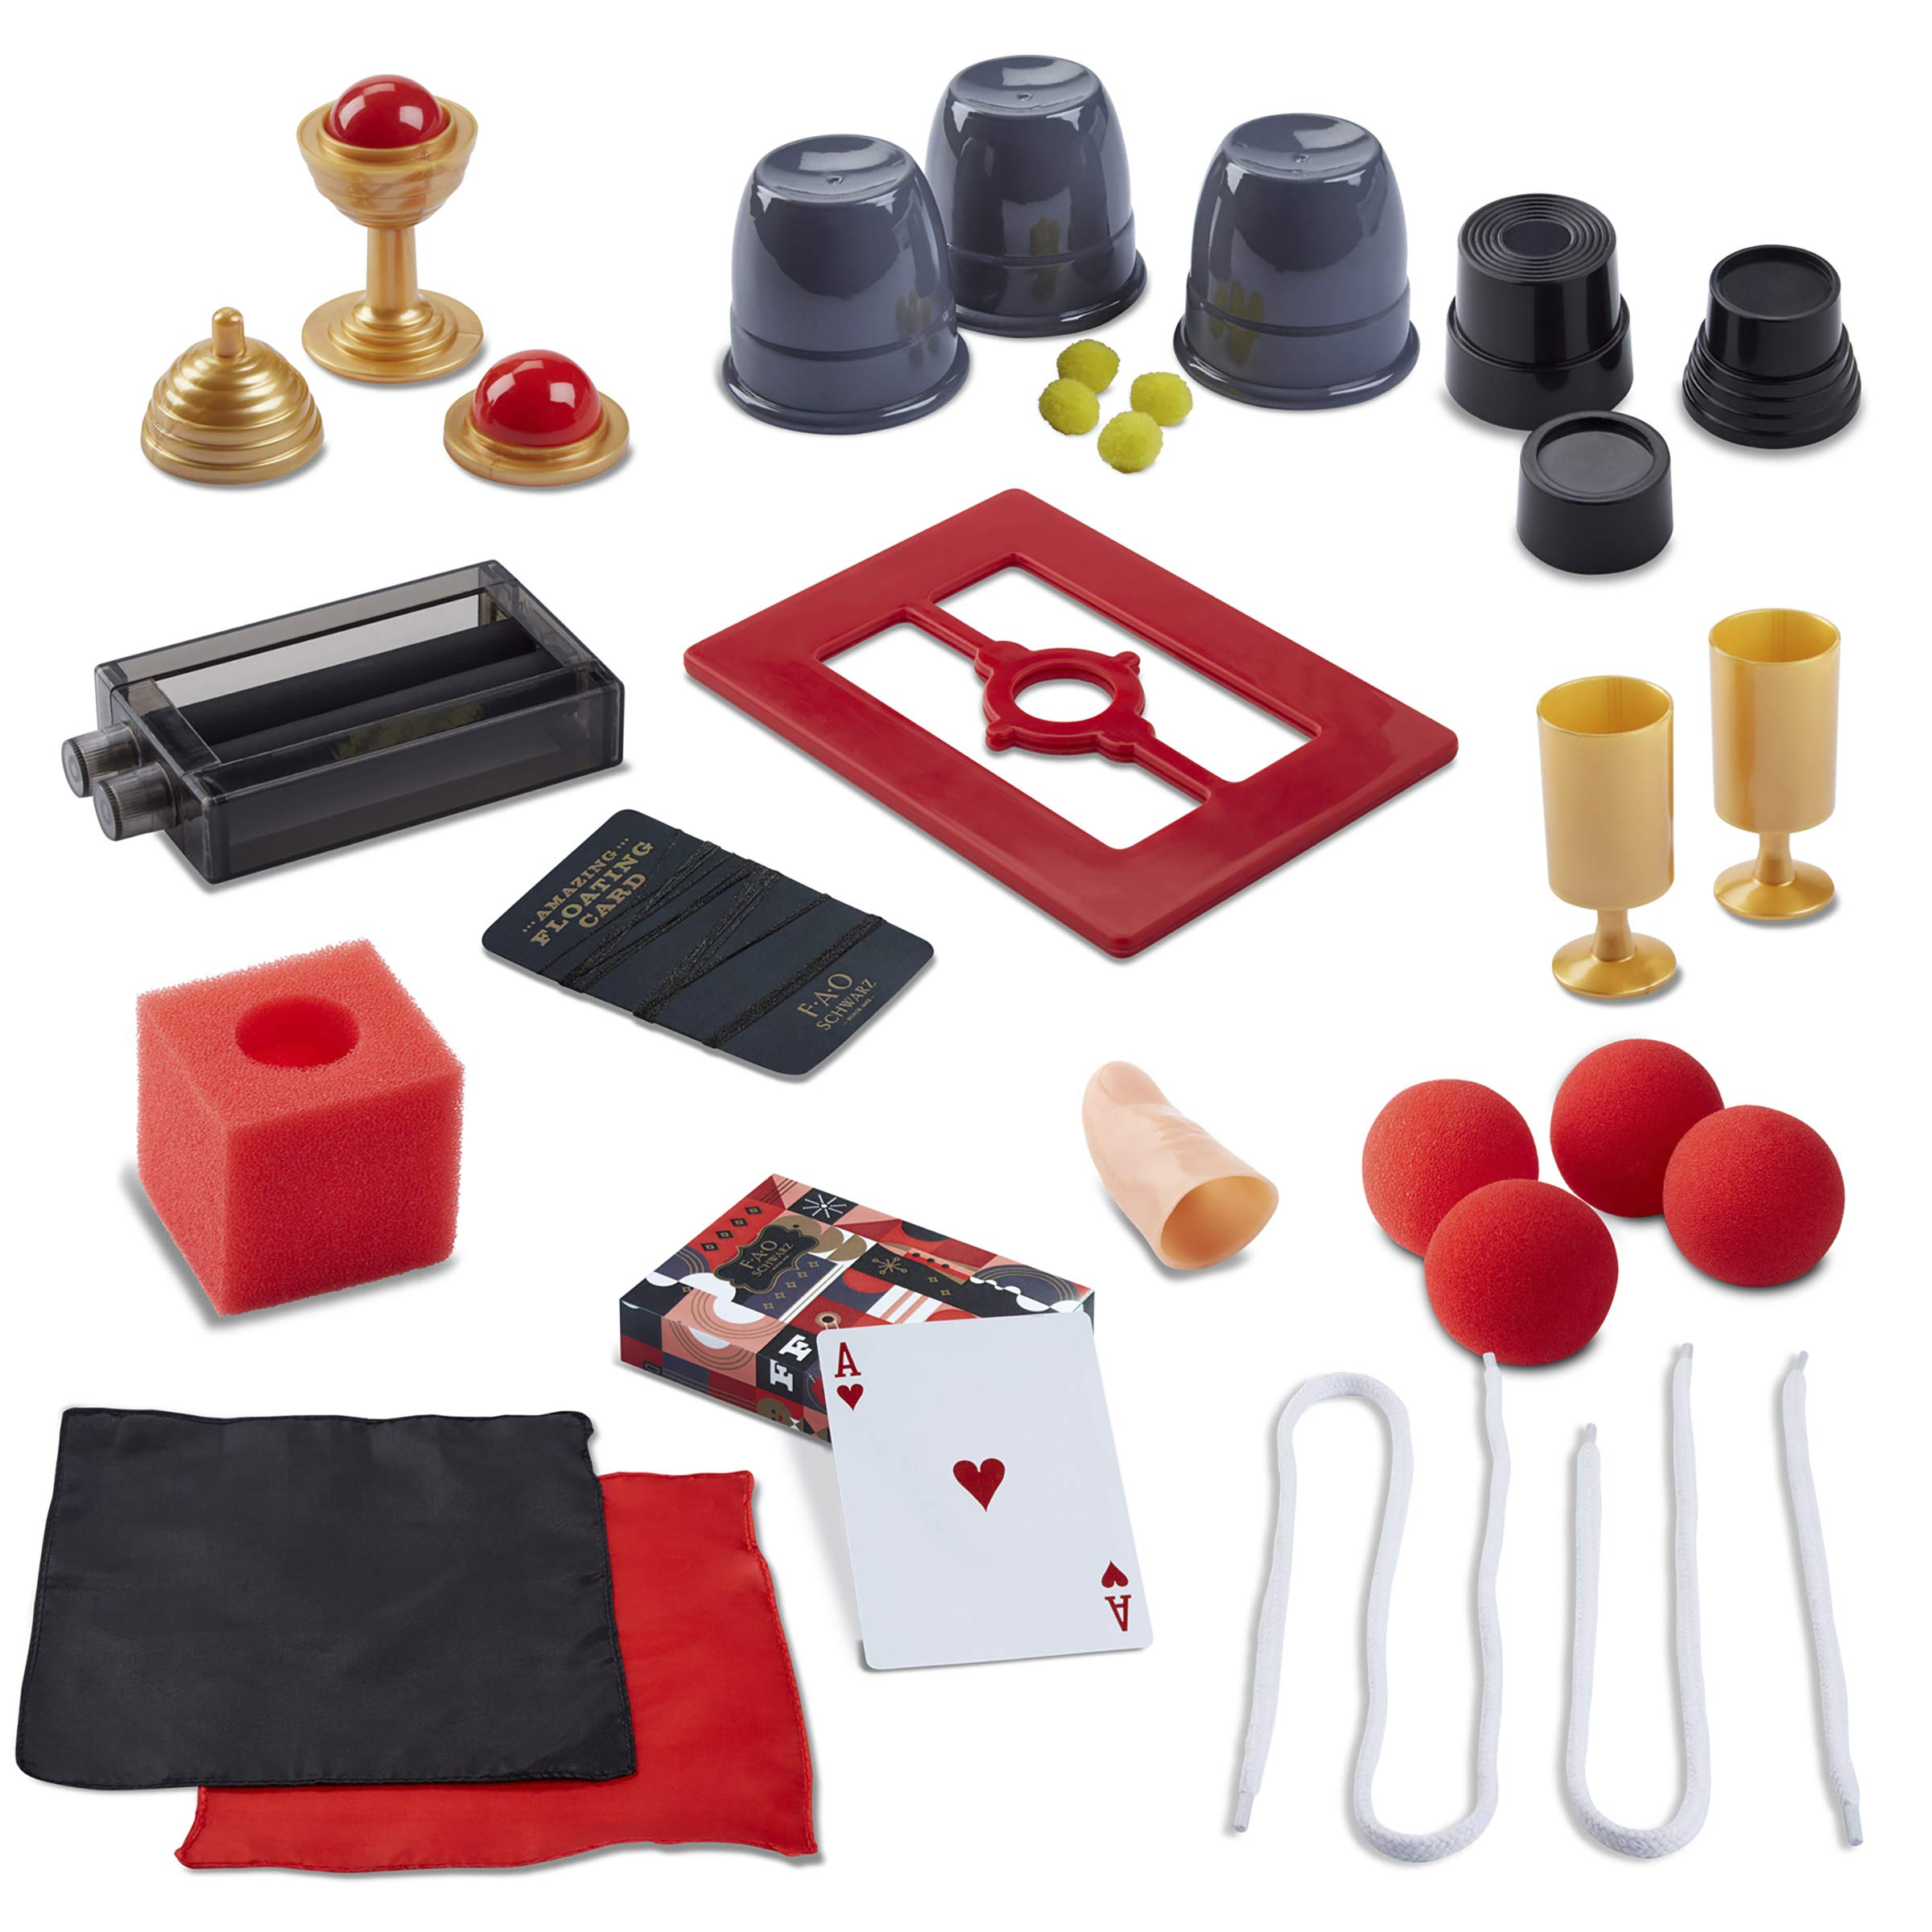 FAO Schwarz Magic Trick Set 28 Piece, 275+ Trick Magician's Bundle for Children - Card Decks, Coin Tricks, Handkerchiefs, & More, Includes Instructions for All Skill Levels, Great Gift for Kids 8+